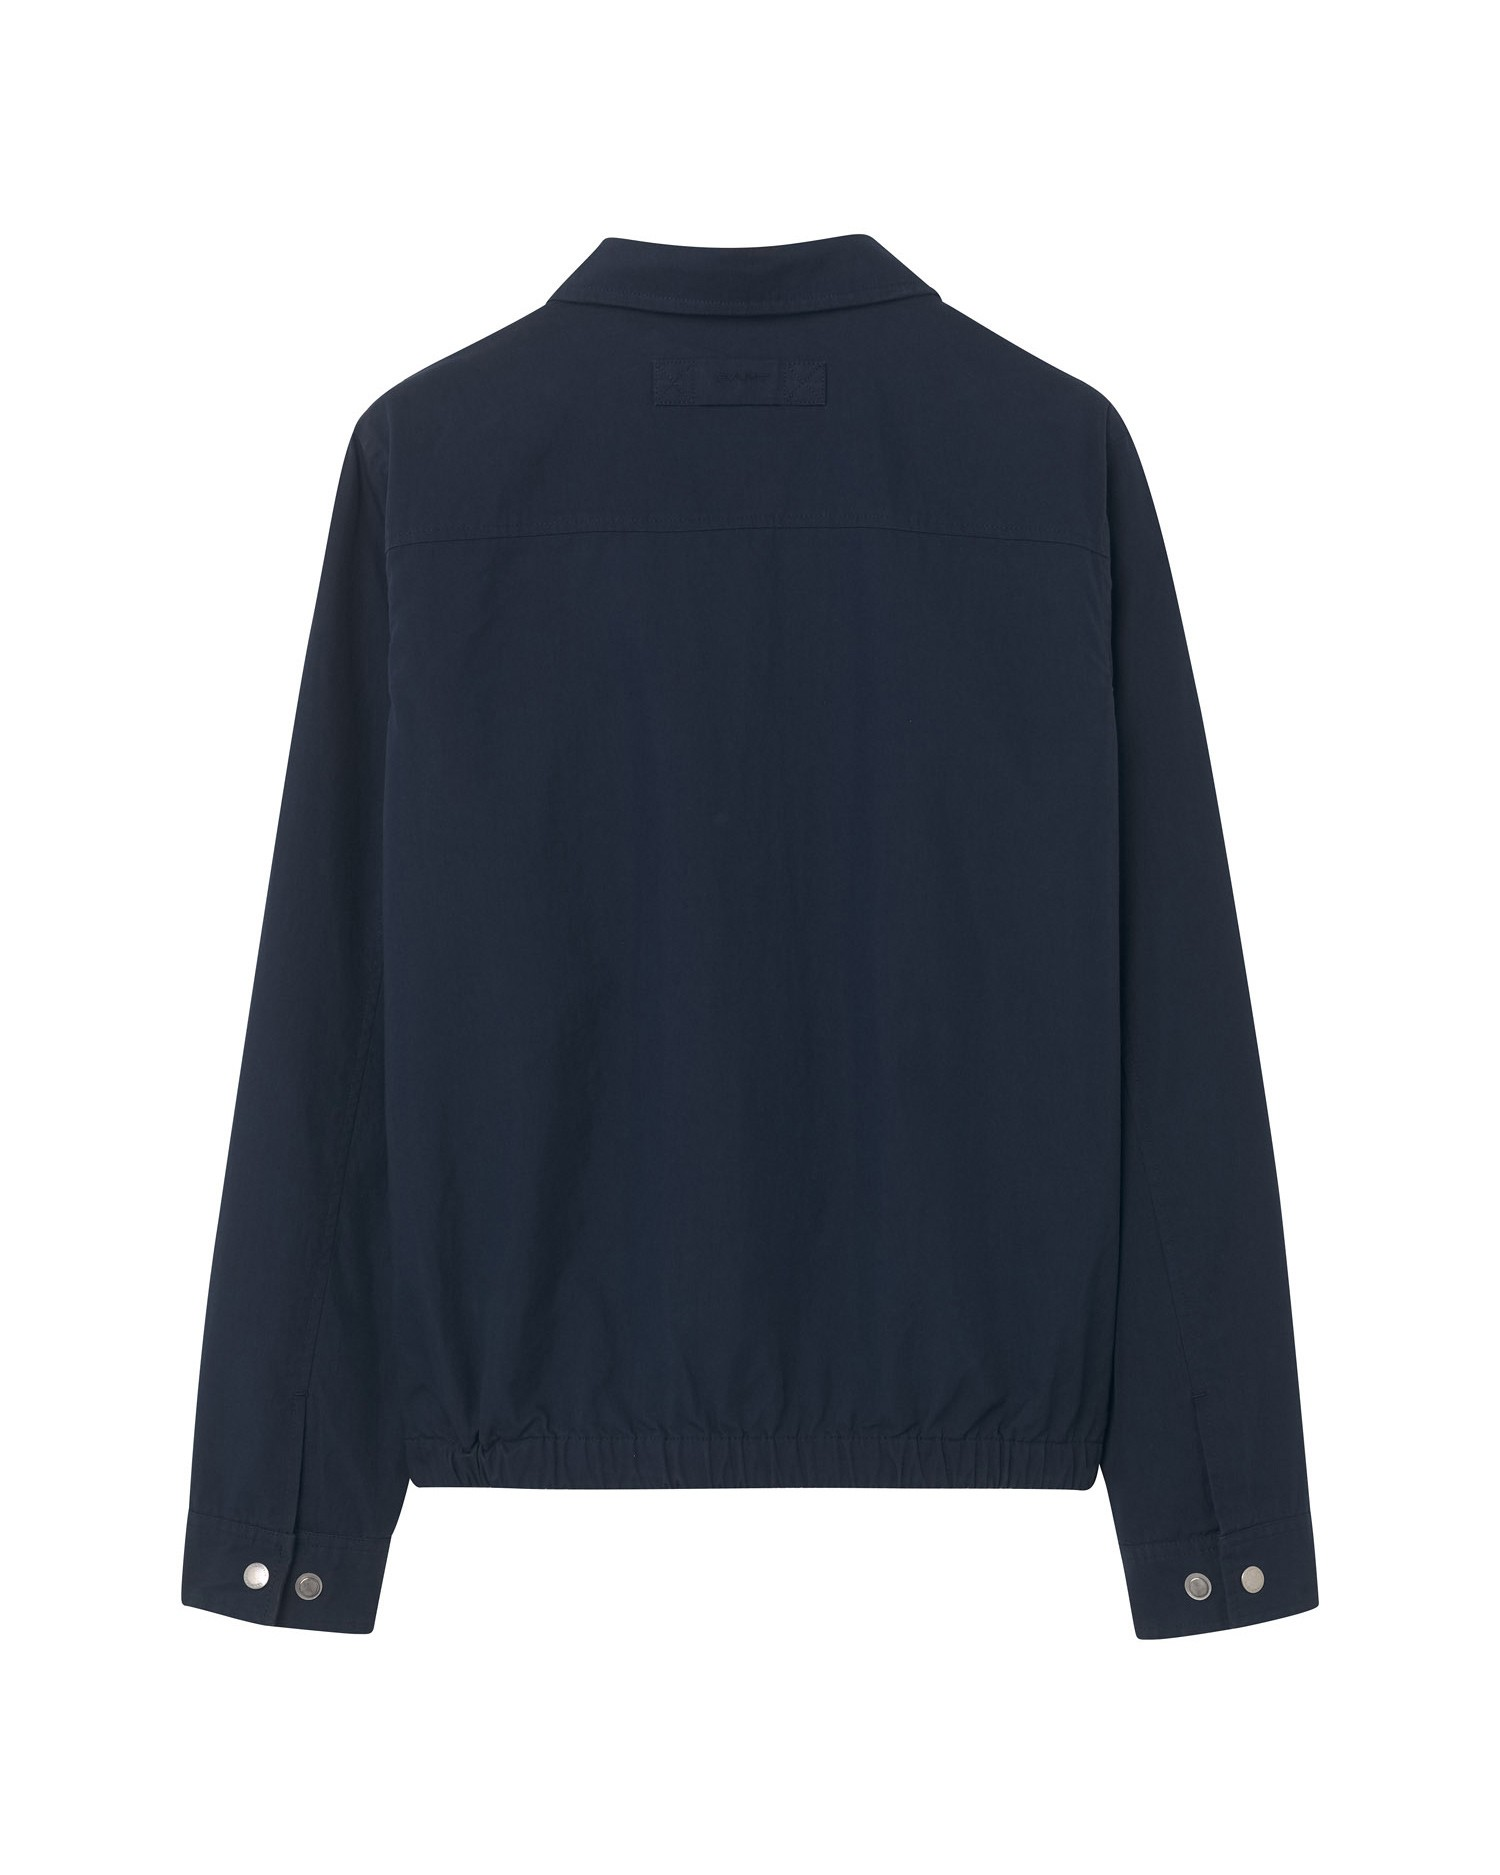 GANT Women's Windcheater - 4700023